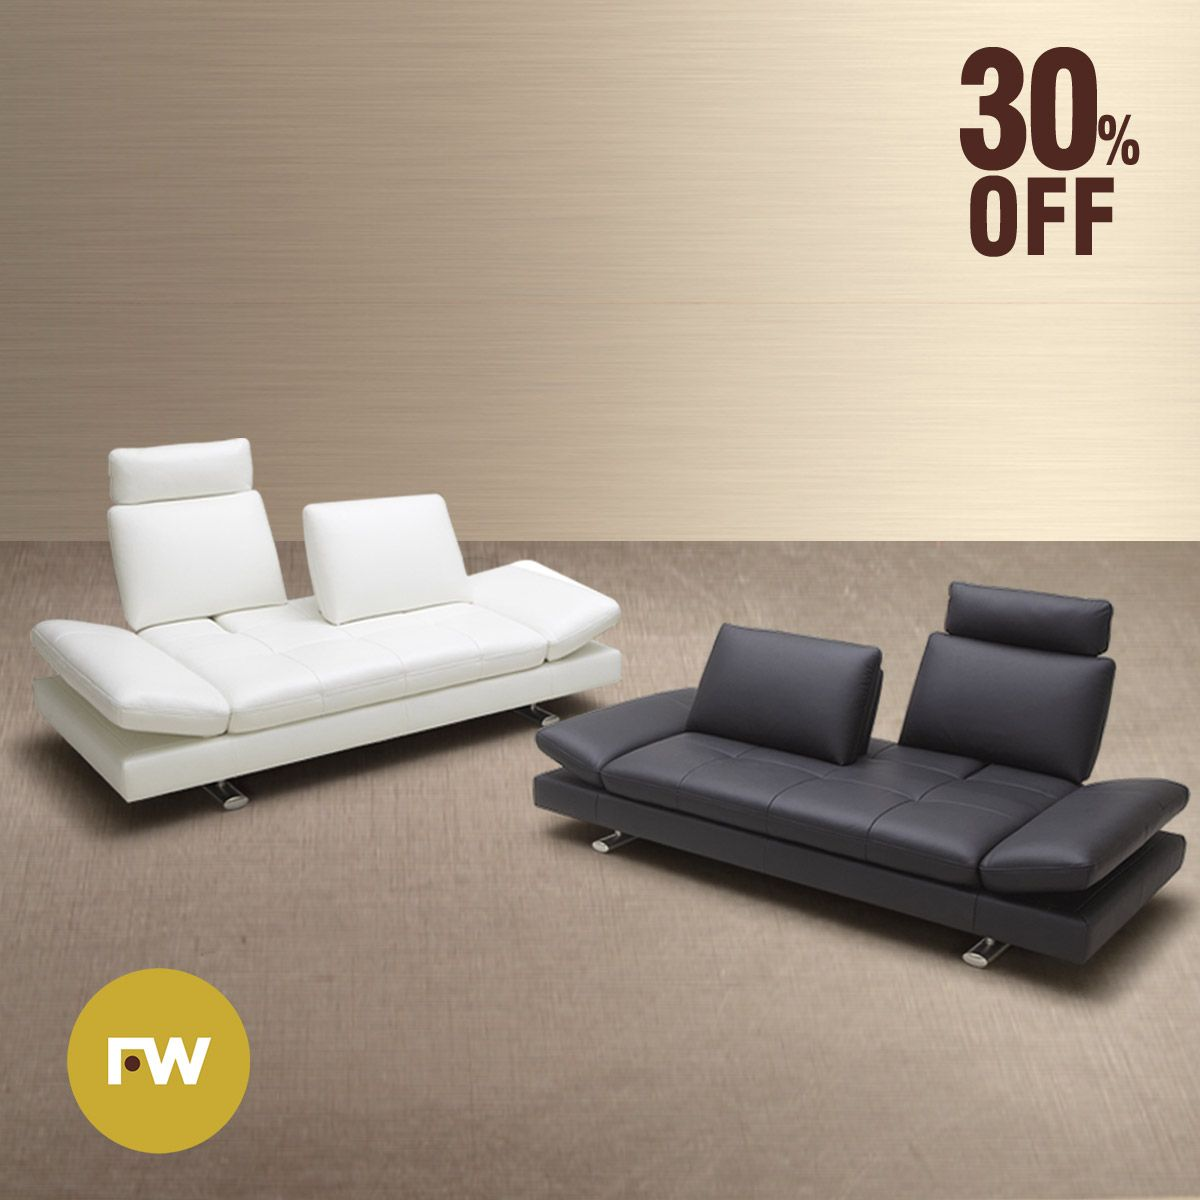 Sofa Reclinavel Como Inclinar 30 Off On This Luxurious Leather Sofa With Adjustable Arm Rest